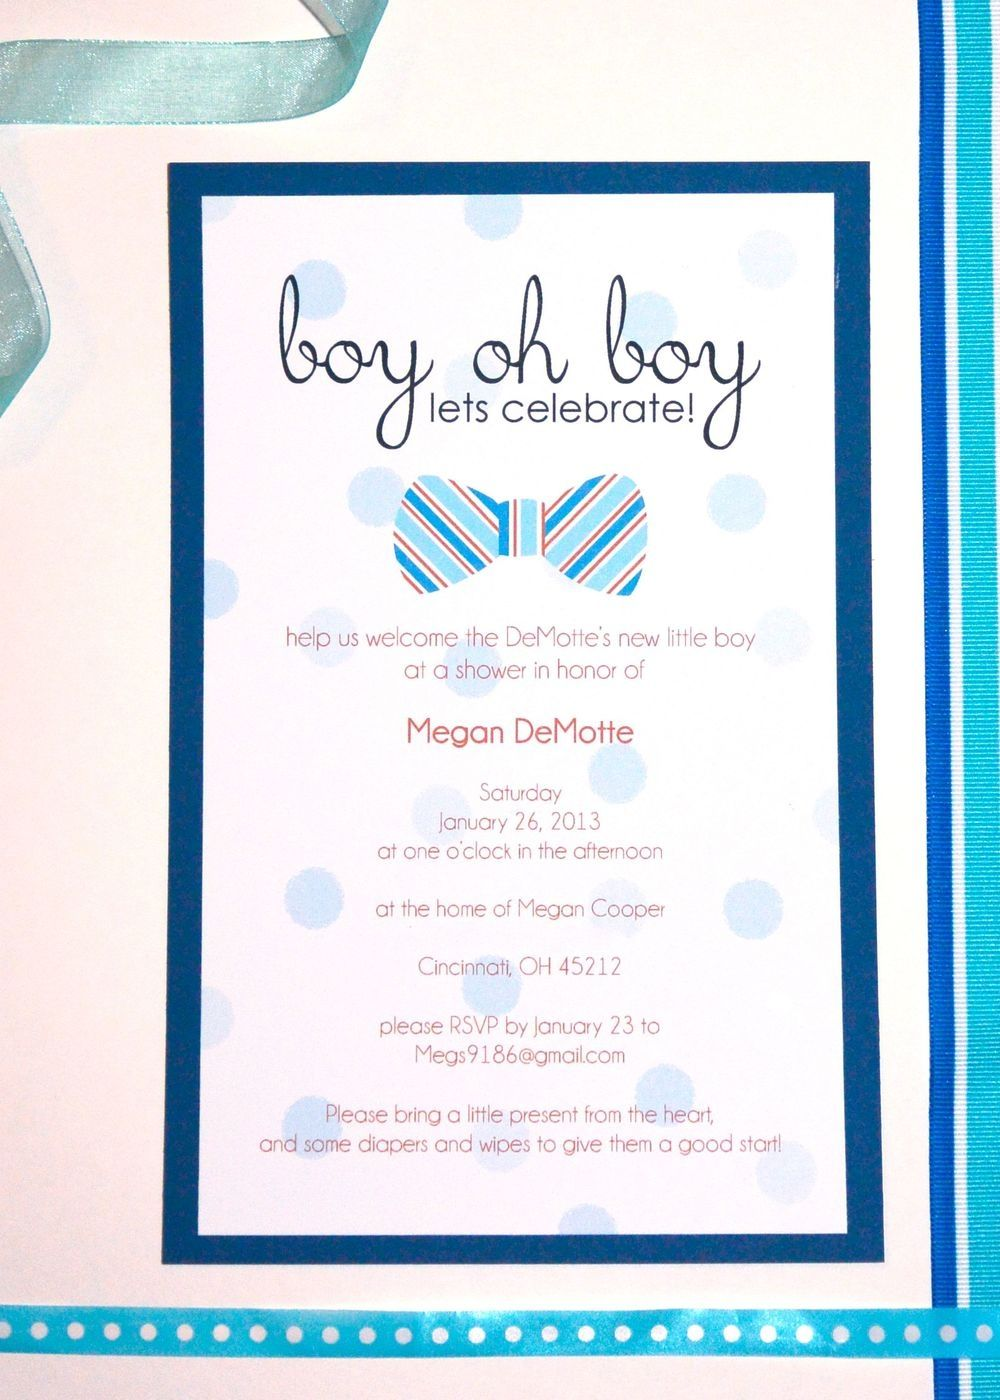 Work Baby Shower Email Invitations | http://atwebry.info | Pinterest ...